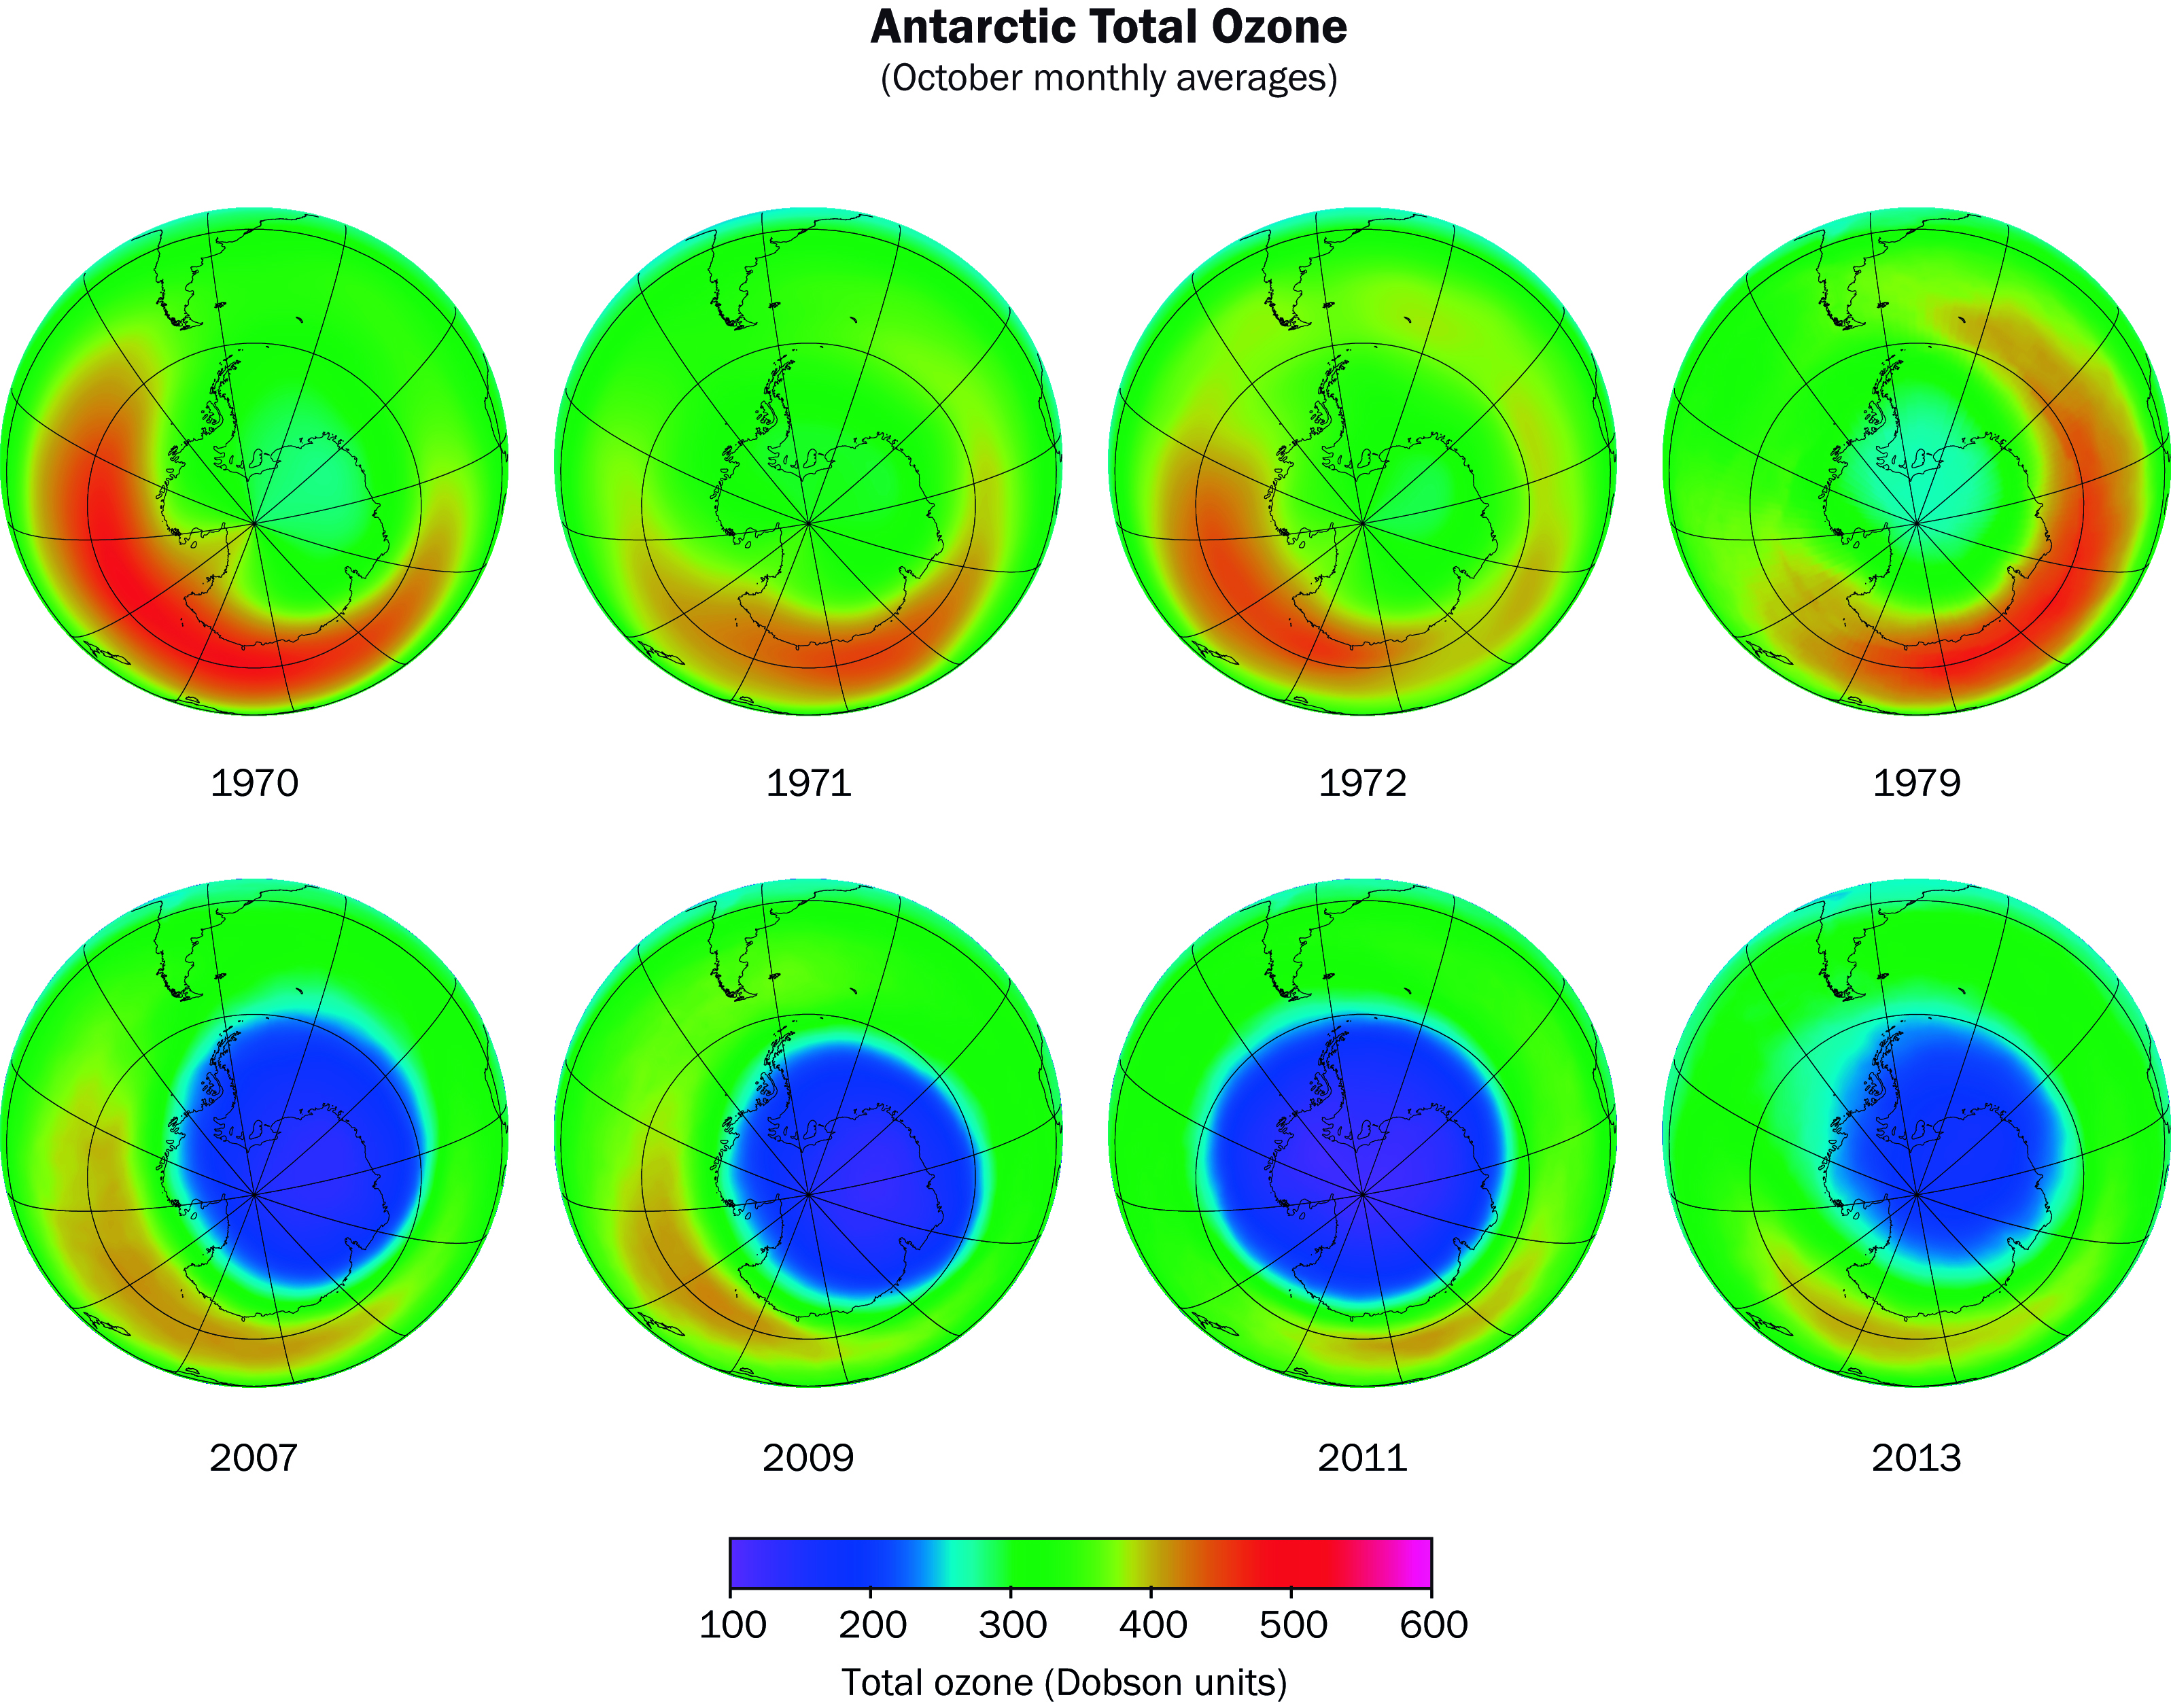 Long-term changes in Arctic total ozone are evident in this series of total ozone maps derived from satellite observations.